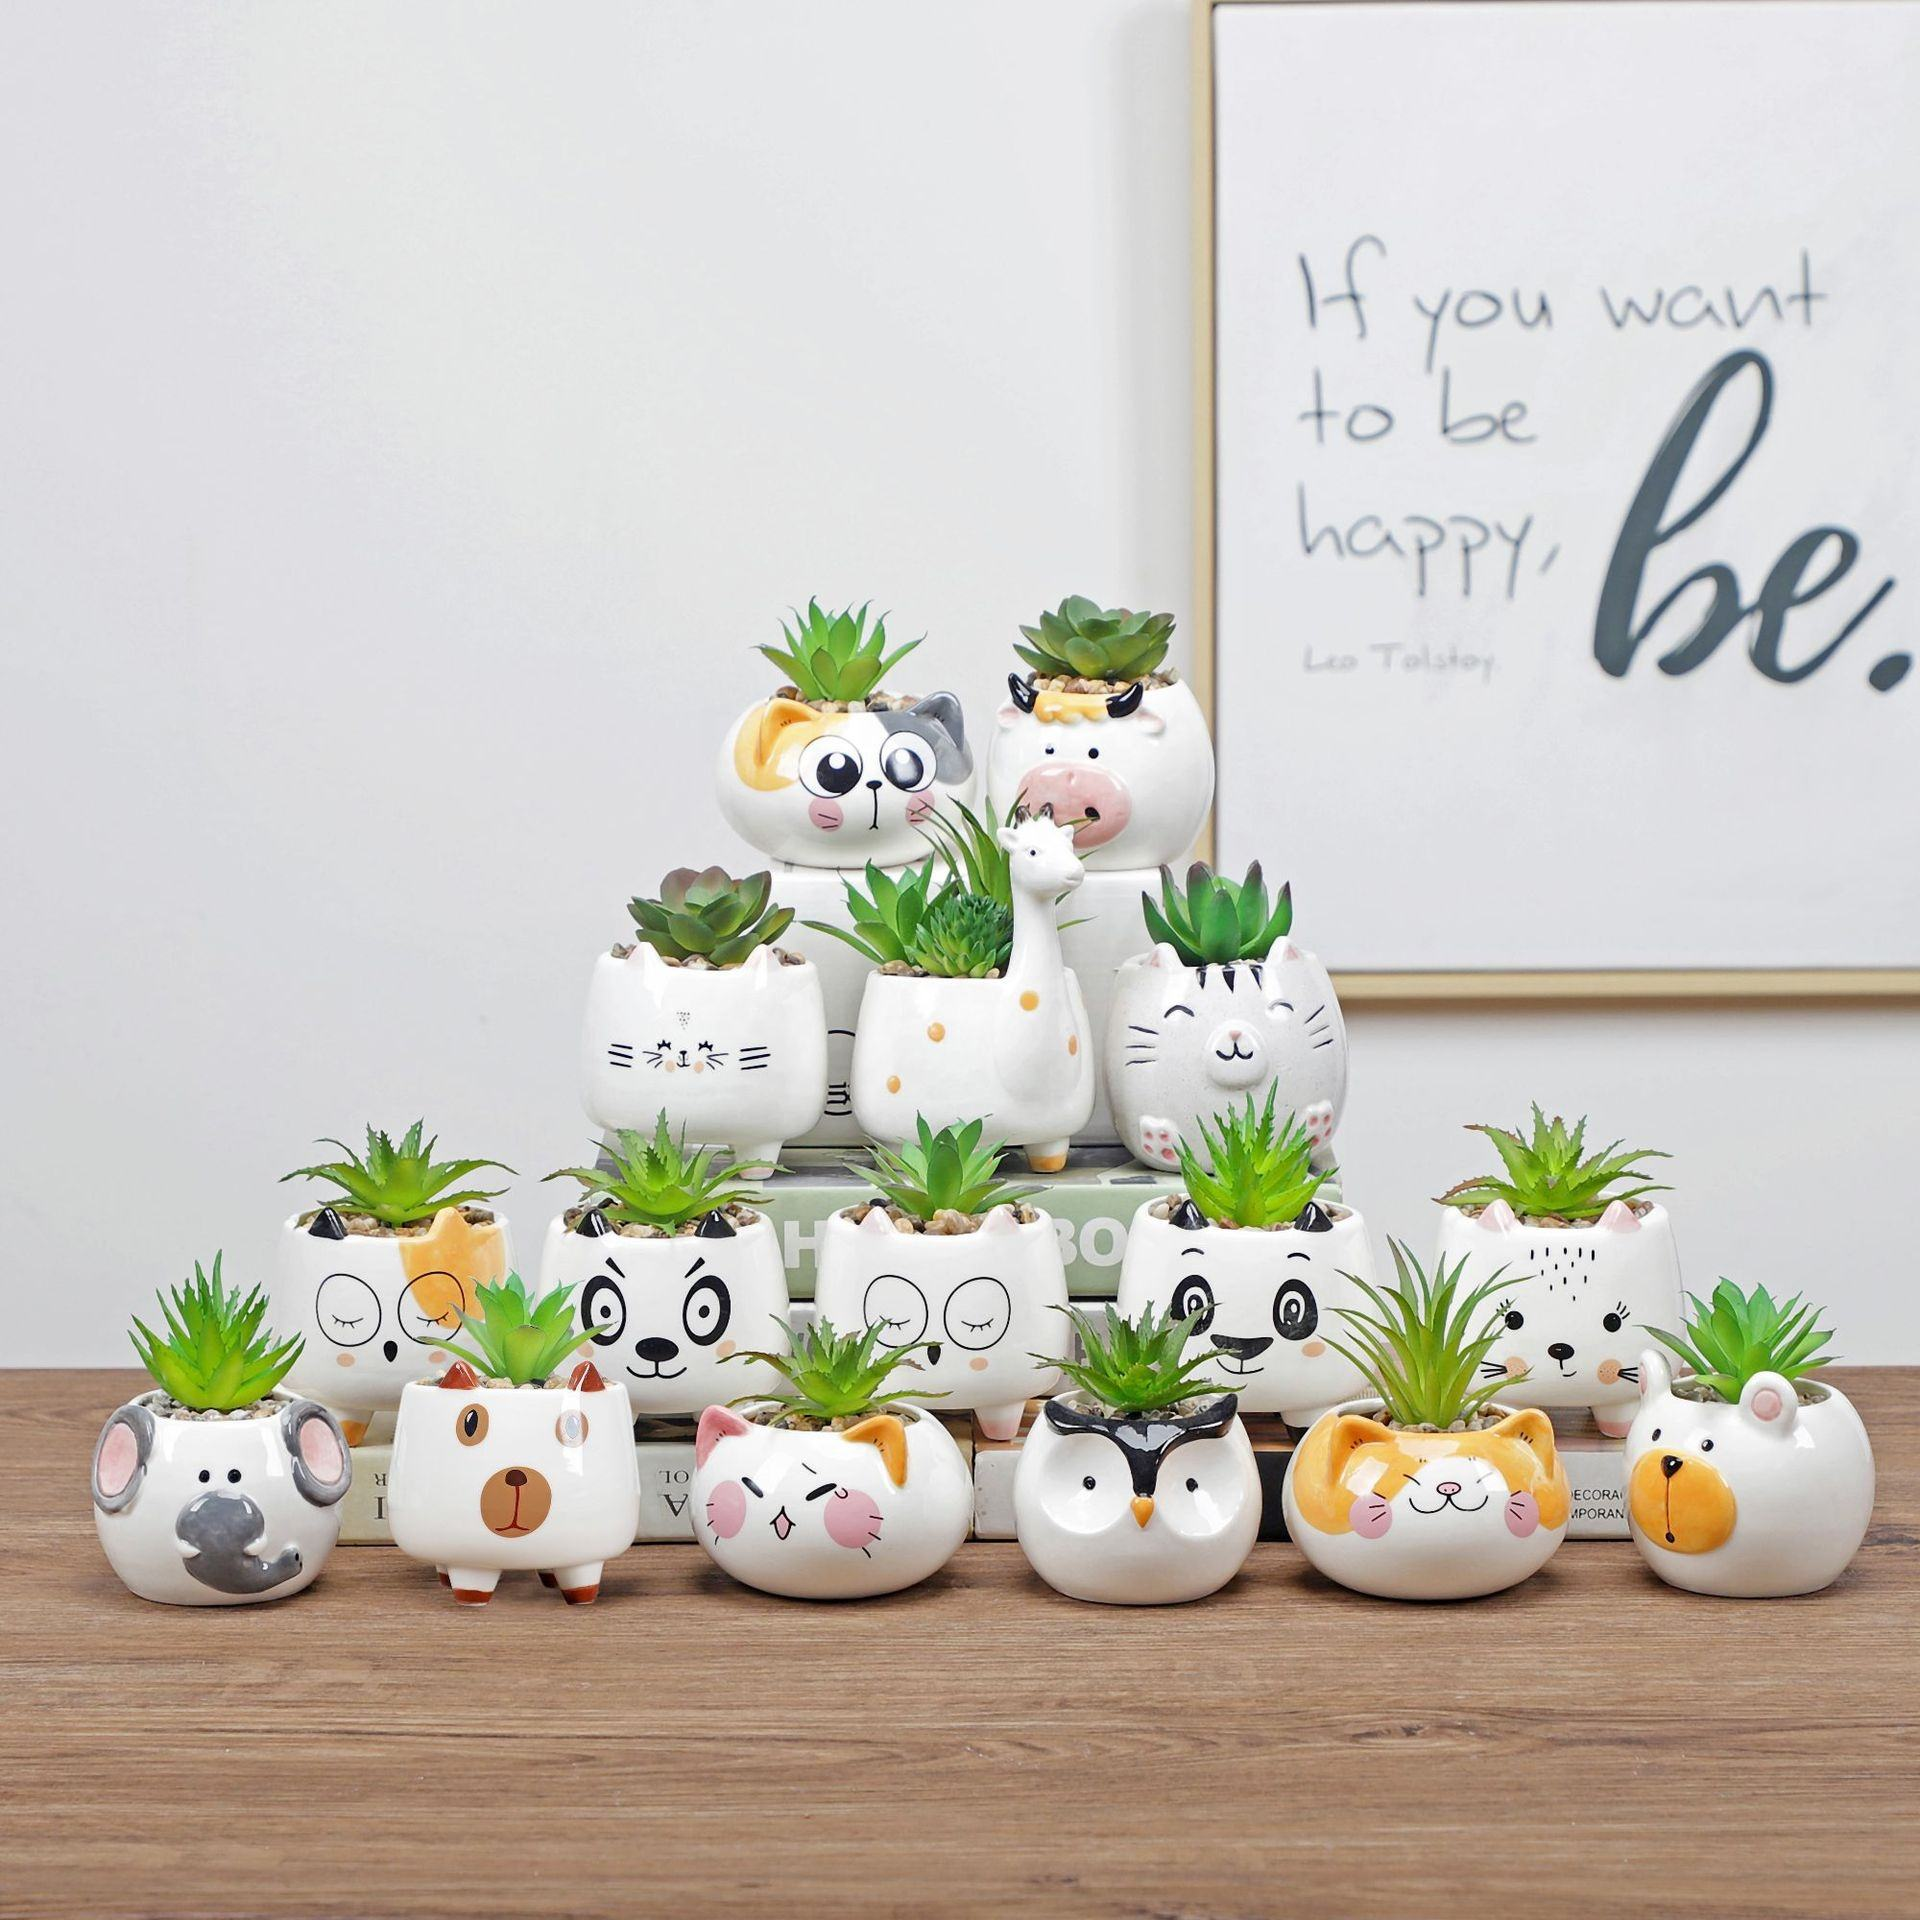 Wholesale Drop Shipping 20 shape Cartoon Animal Ceramic Flower pot cute Succulent Cactus Plant Pots Home Decor Garden Planter